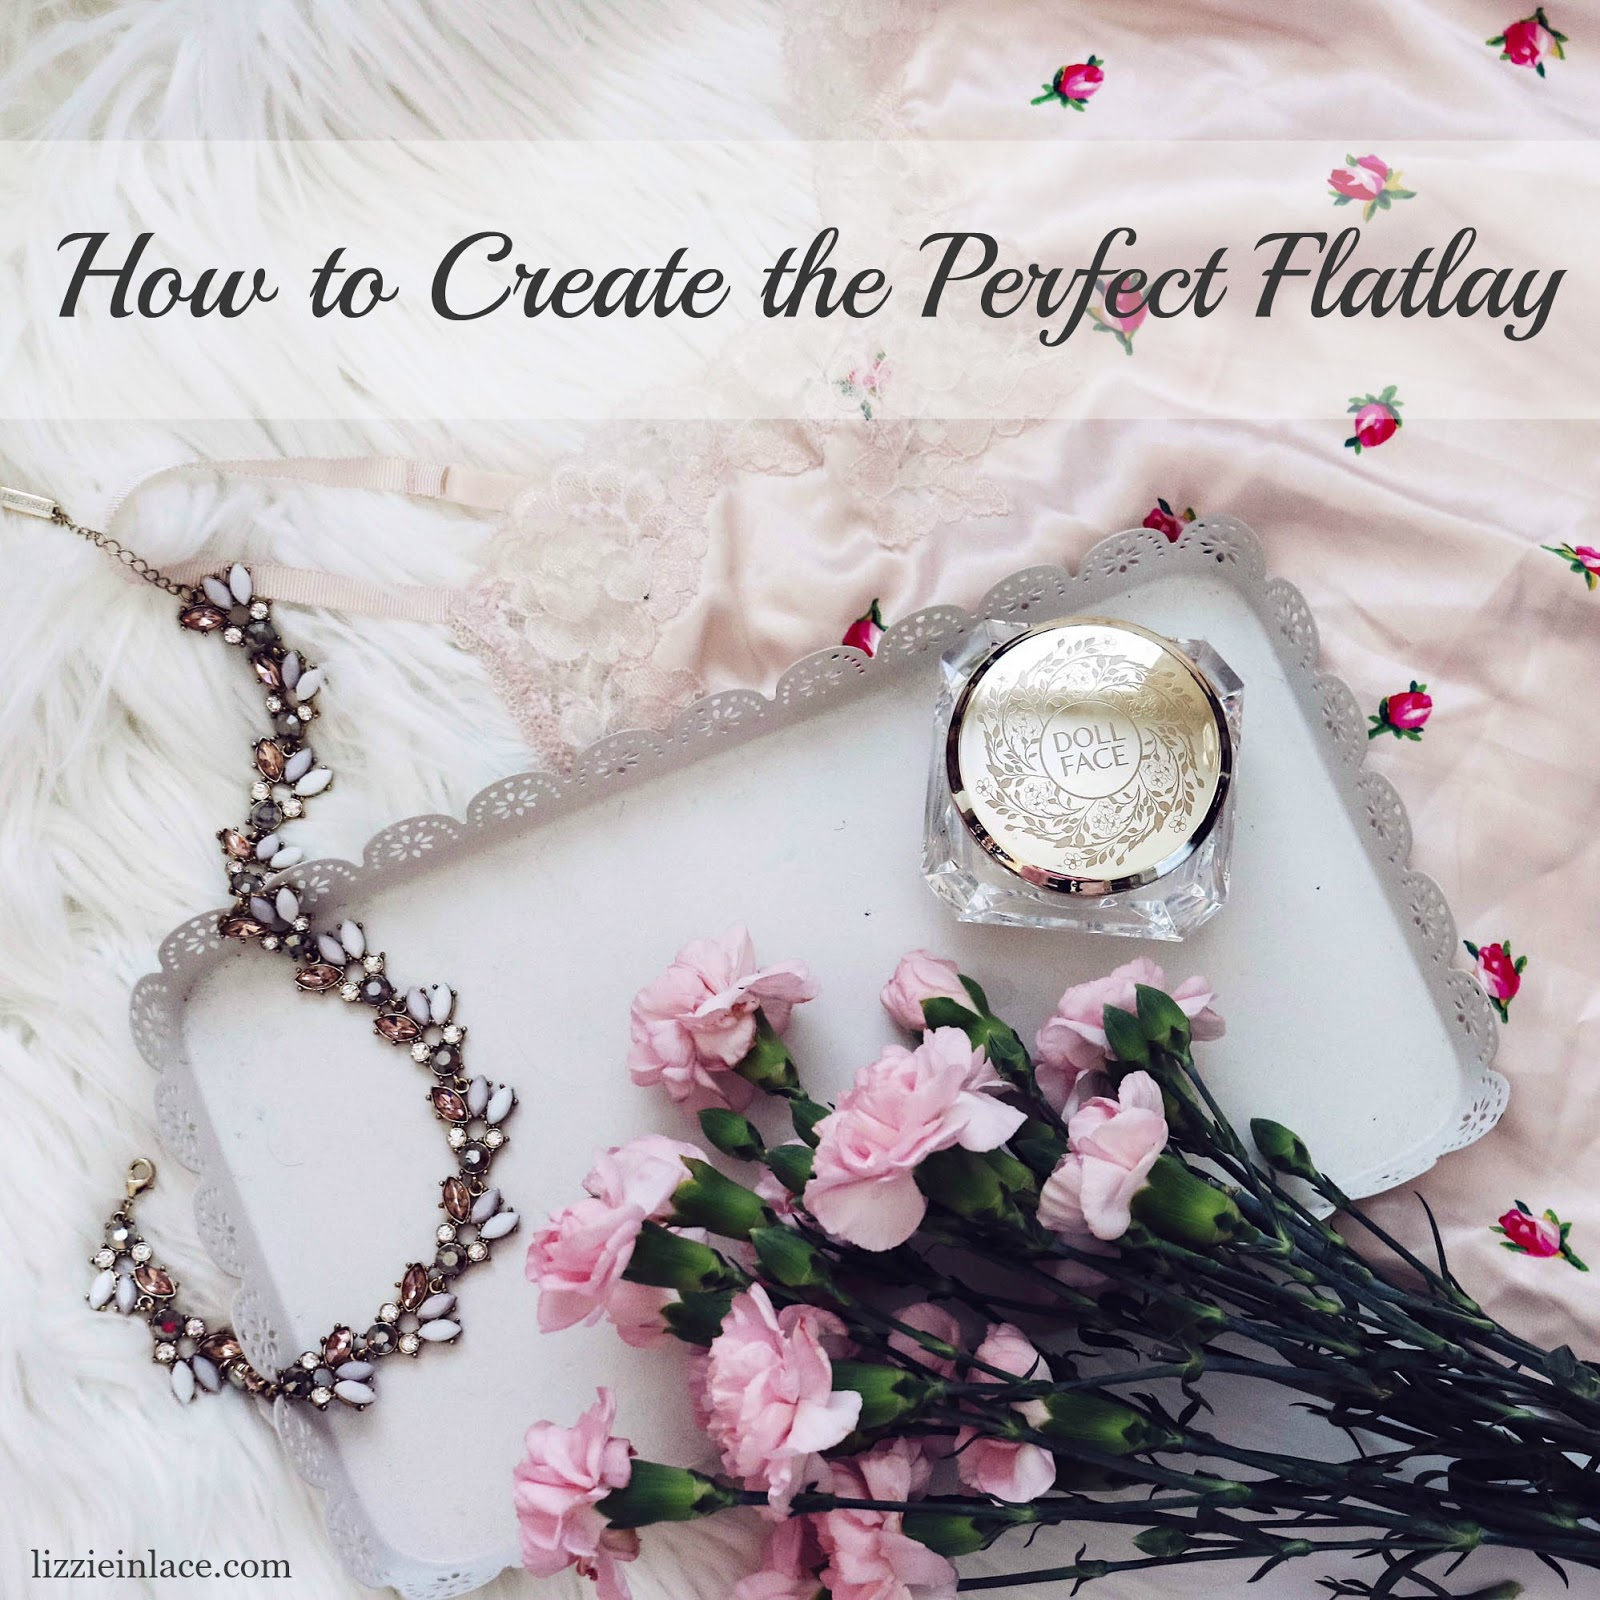 How to Create the Perfect Flatlay – Part One